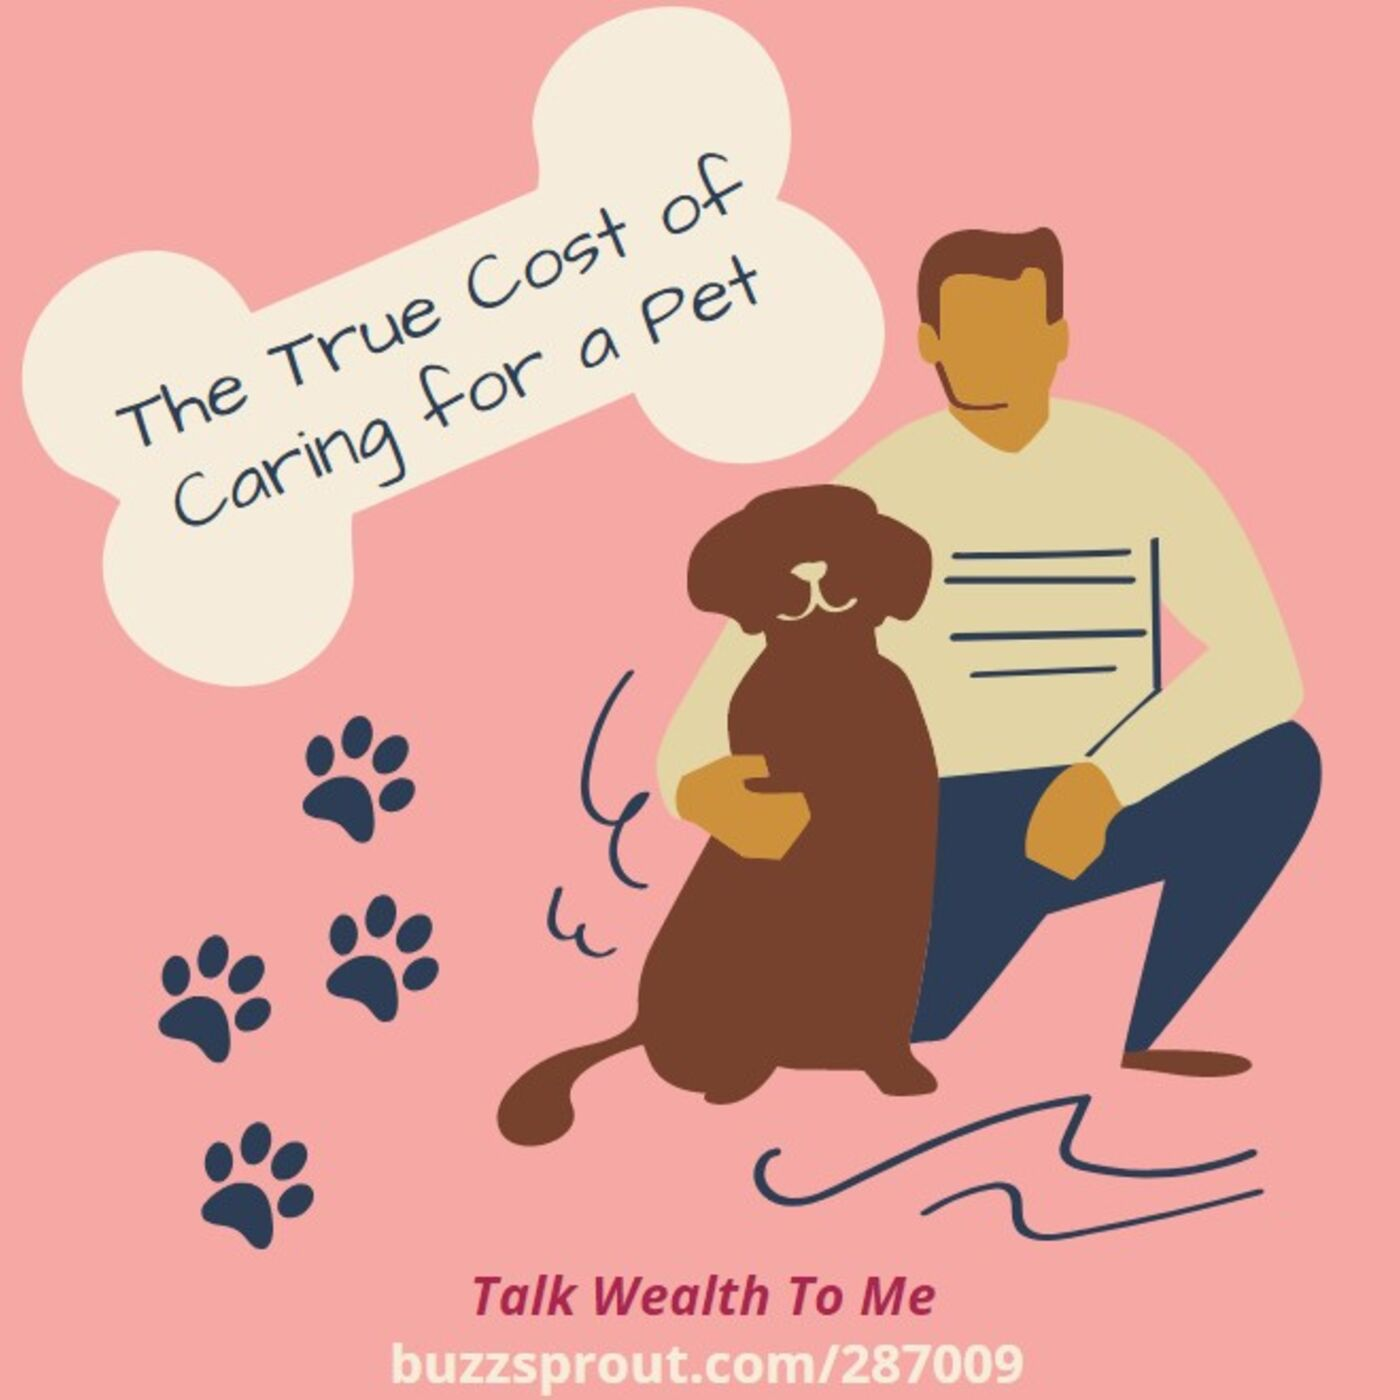 The True Cost of Caring for a Pet